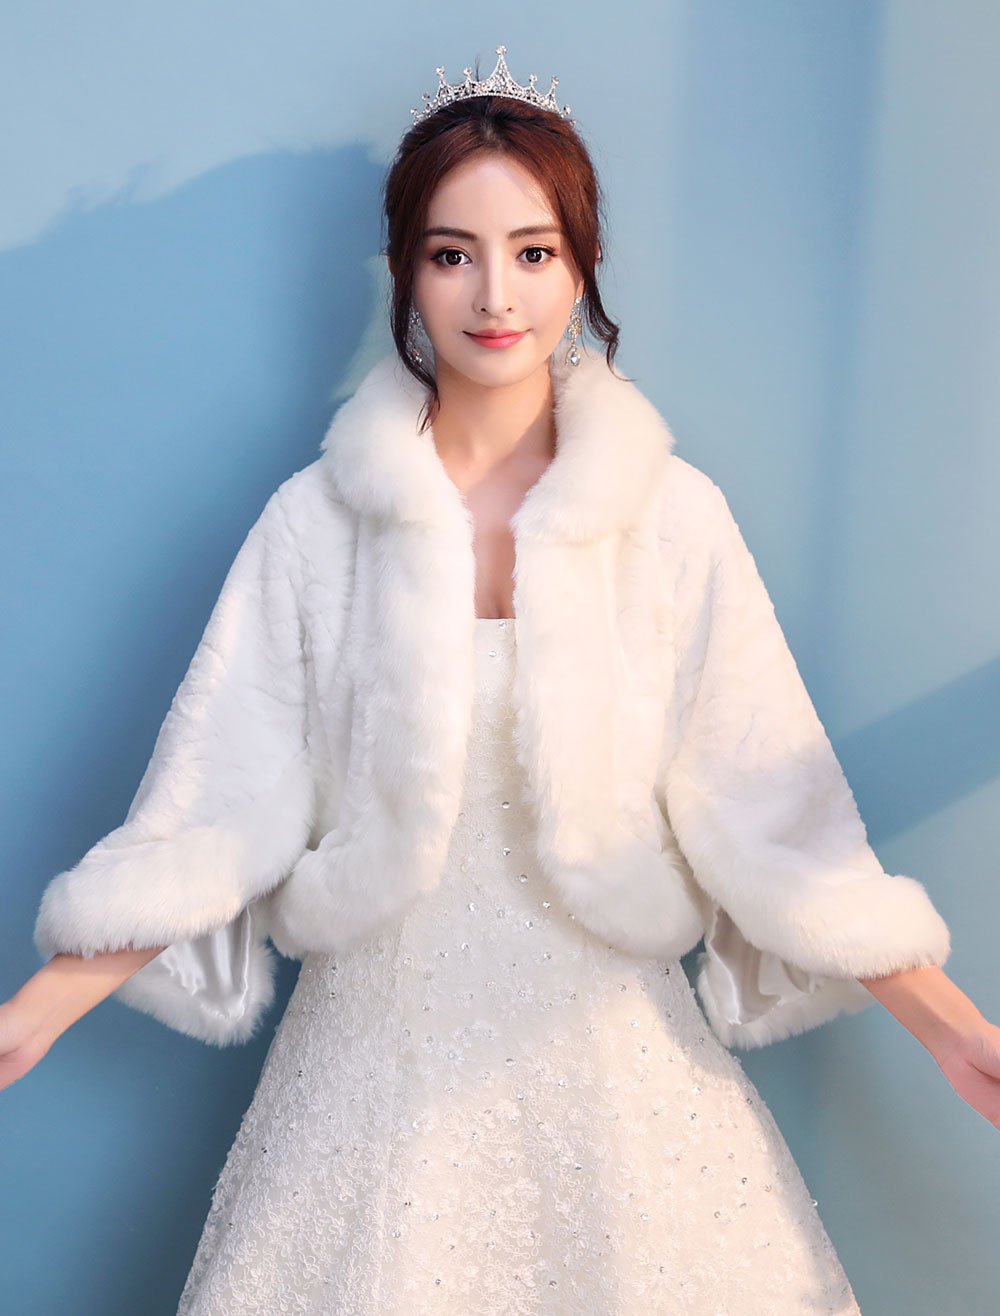 Wedding Bolero Jacket Faux Fur Long Sleeve Ivory Bridal Shawl Party Cover Ups